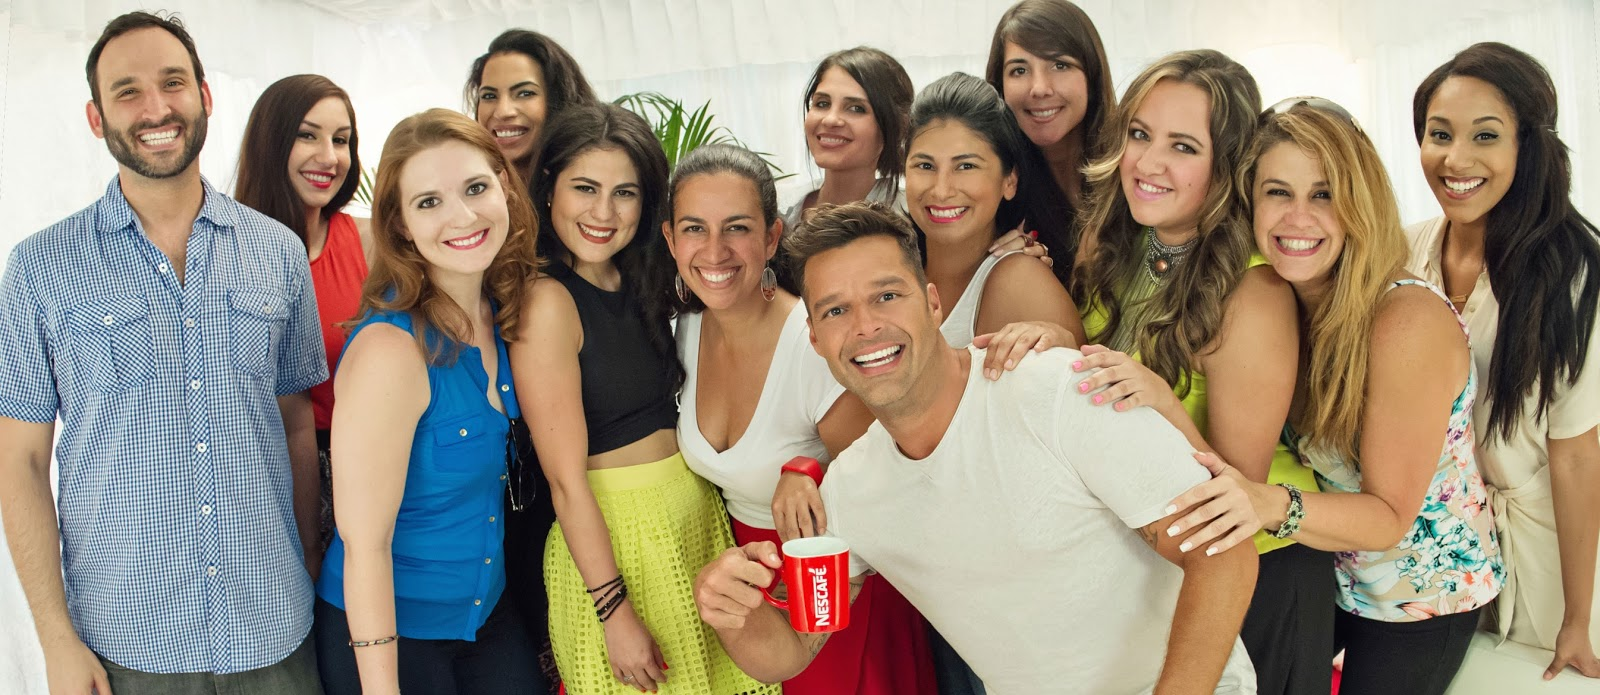 Nescafe-Coffee-Break-Miami-Ricky-Martin